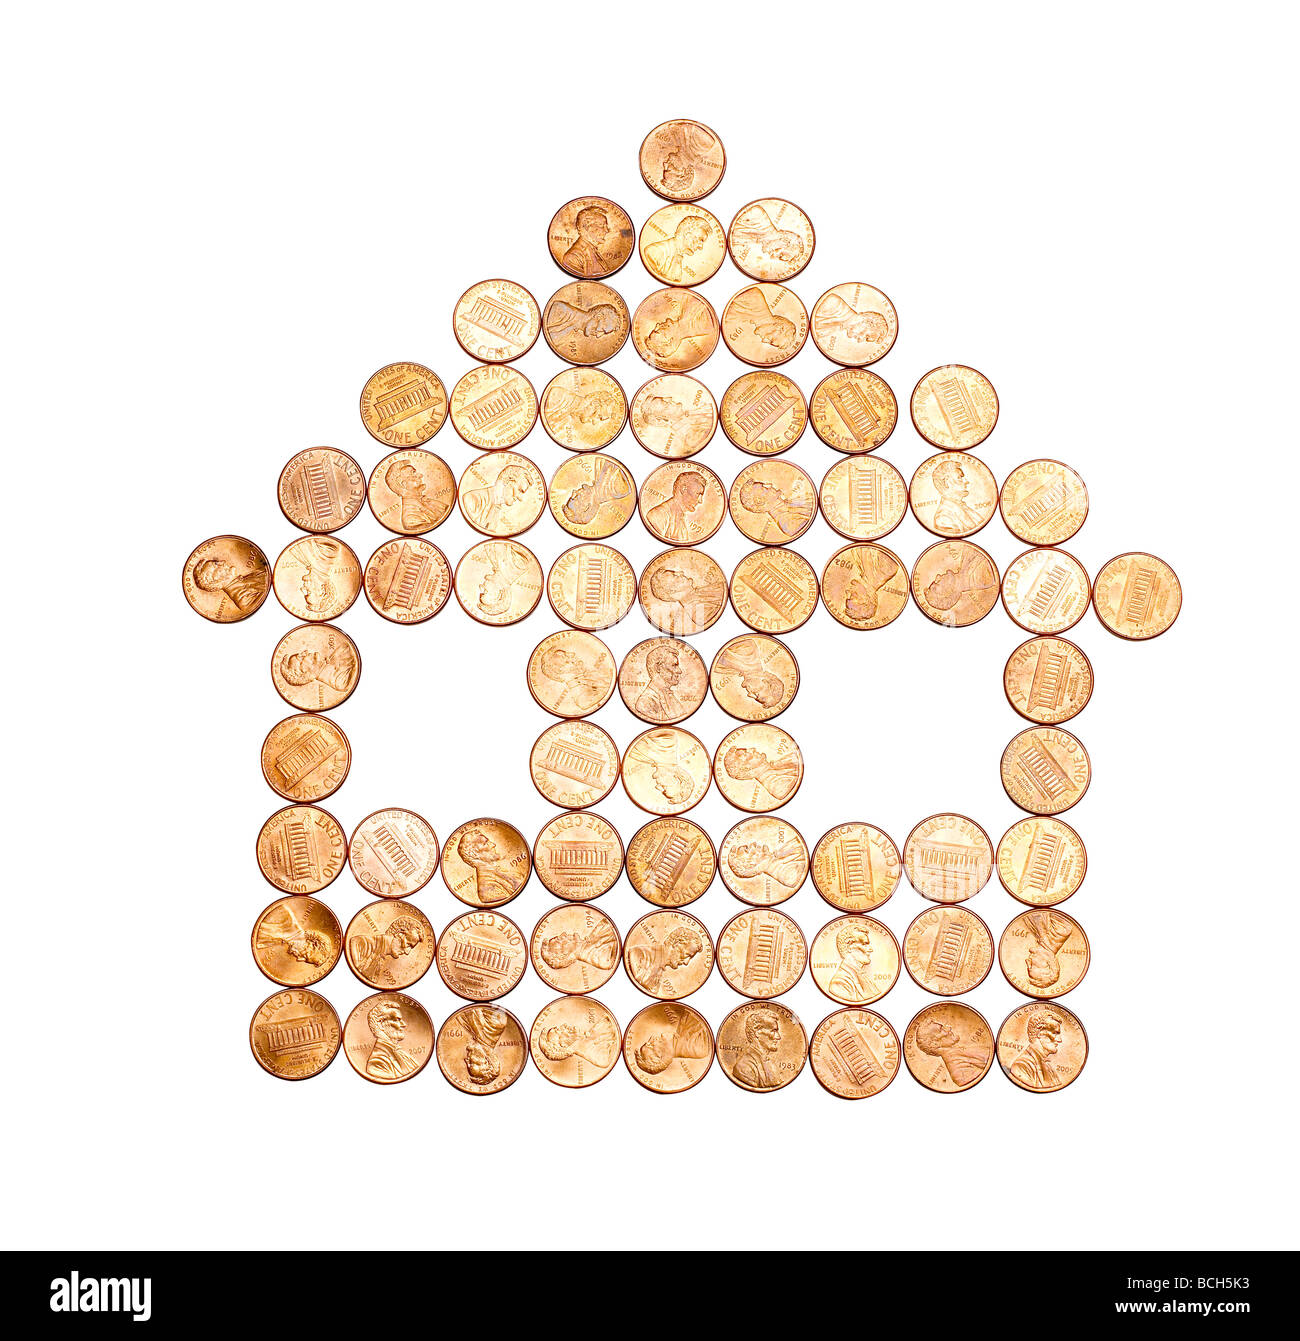 pennies cent elevated view - Stock Image